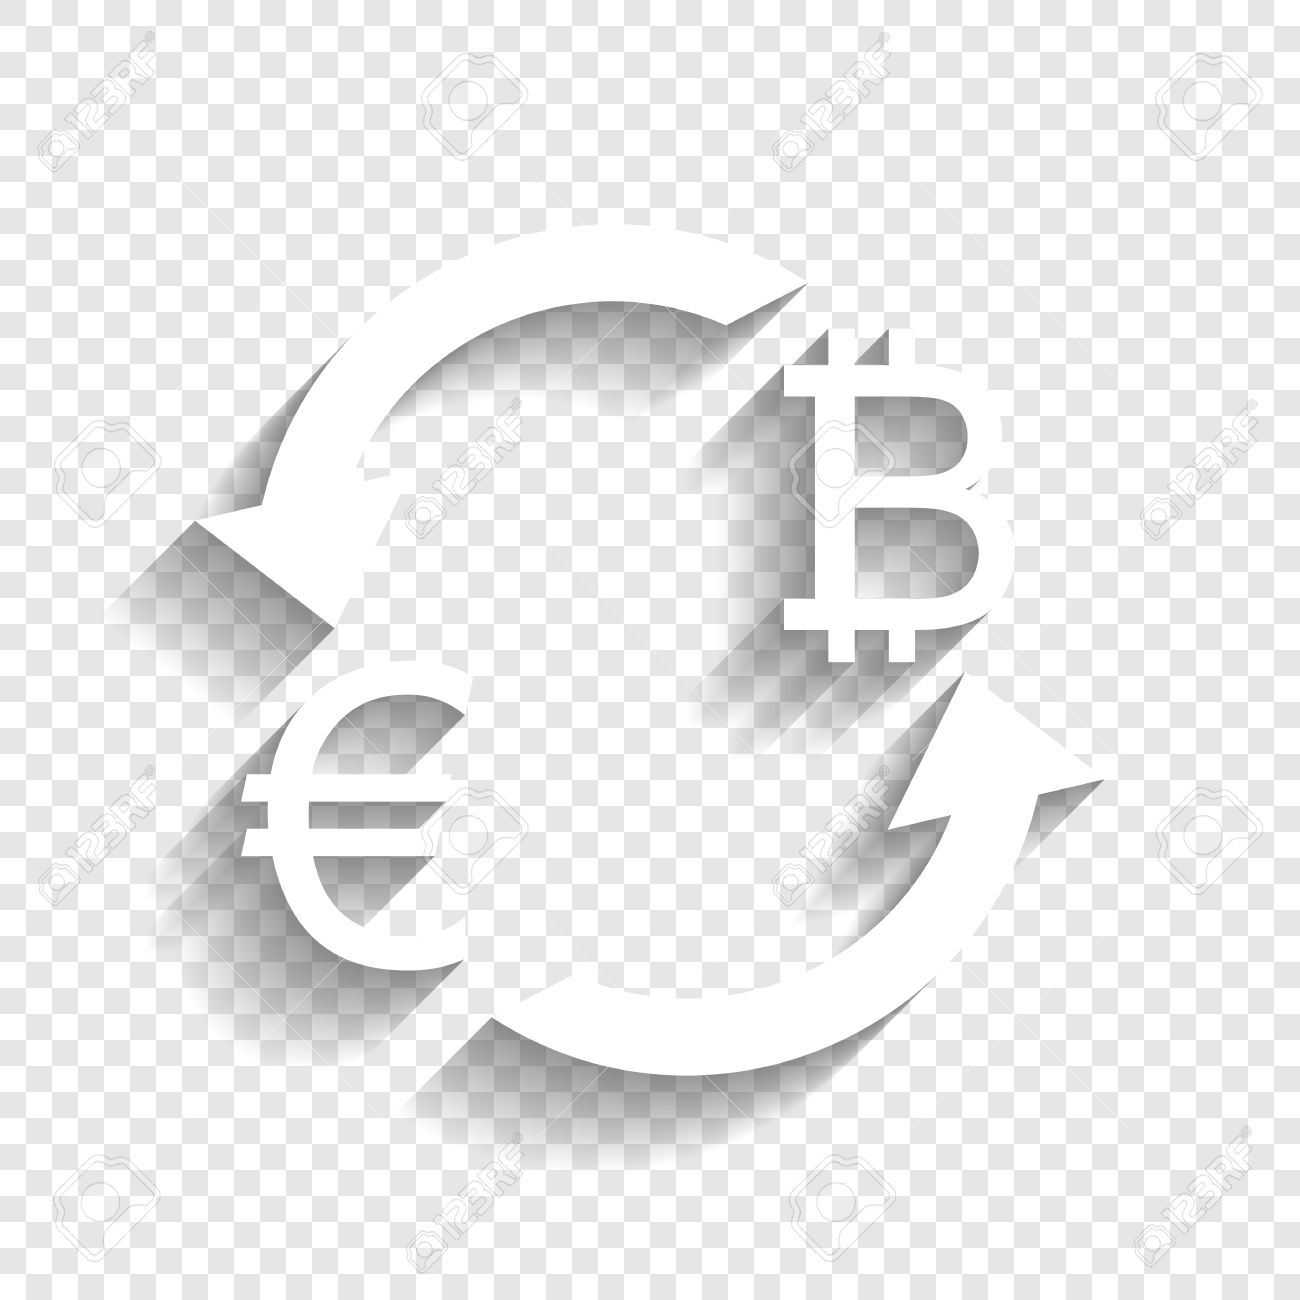 Transparent Background Currency Exchange Sign Euro And Bitcoin Vector White Icon With Soft Shadow On